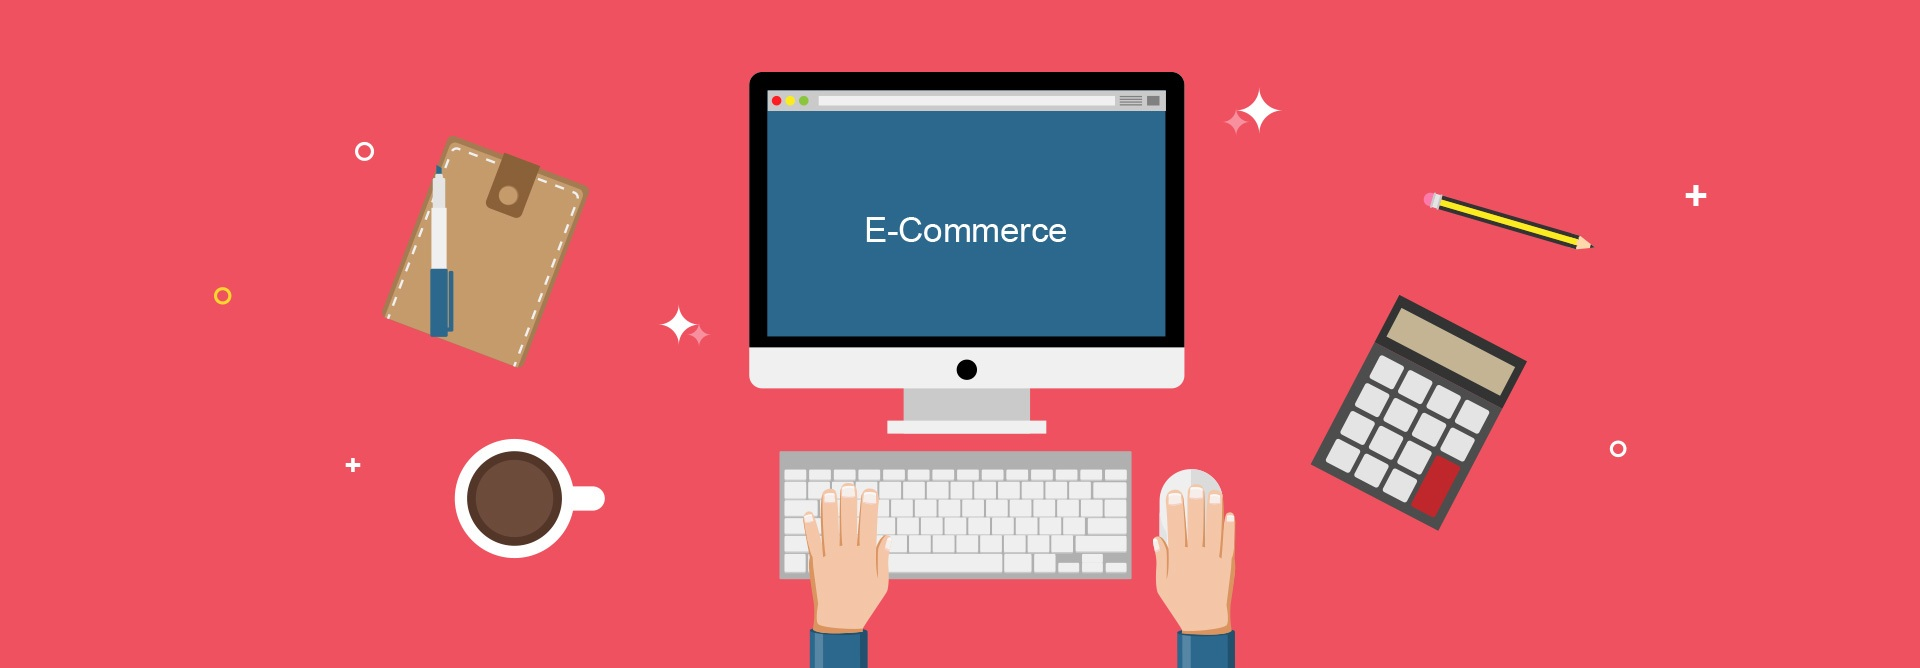 How To Improve the E-Commerce Conversion Rate For Your Business